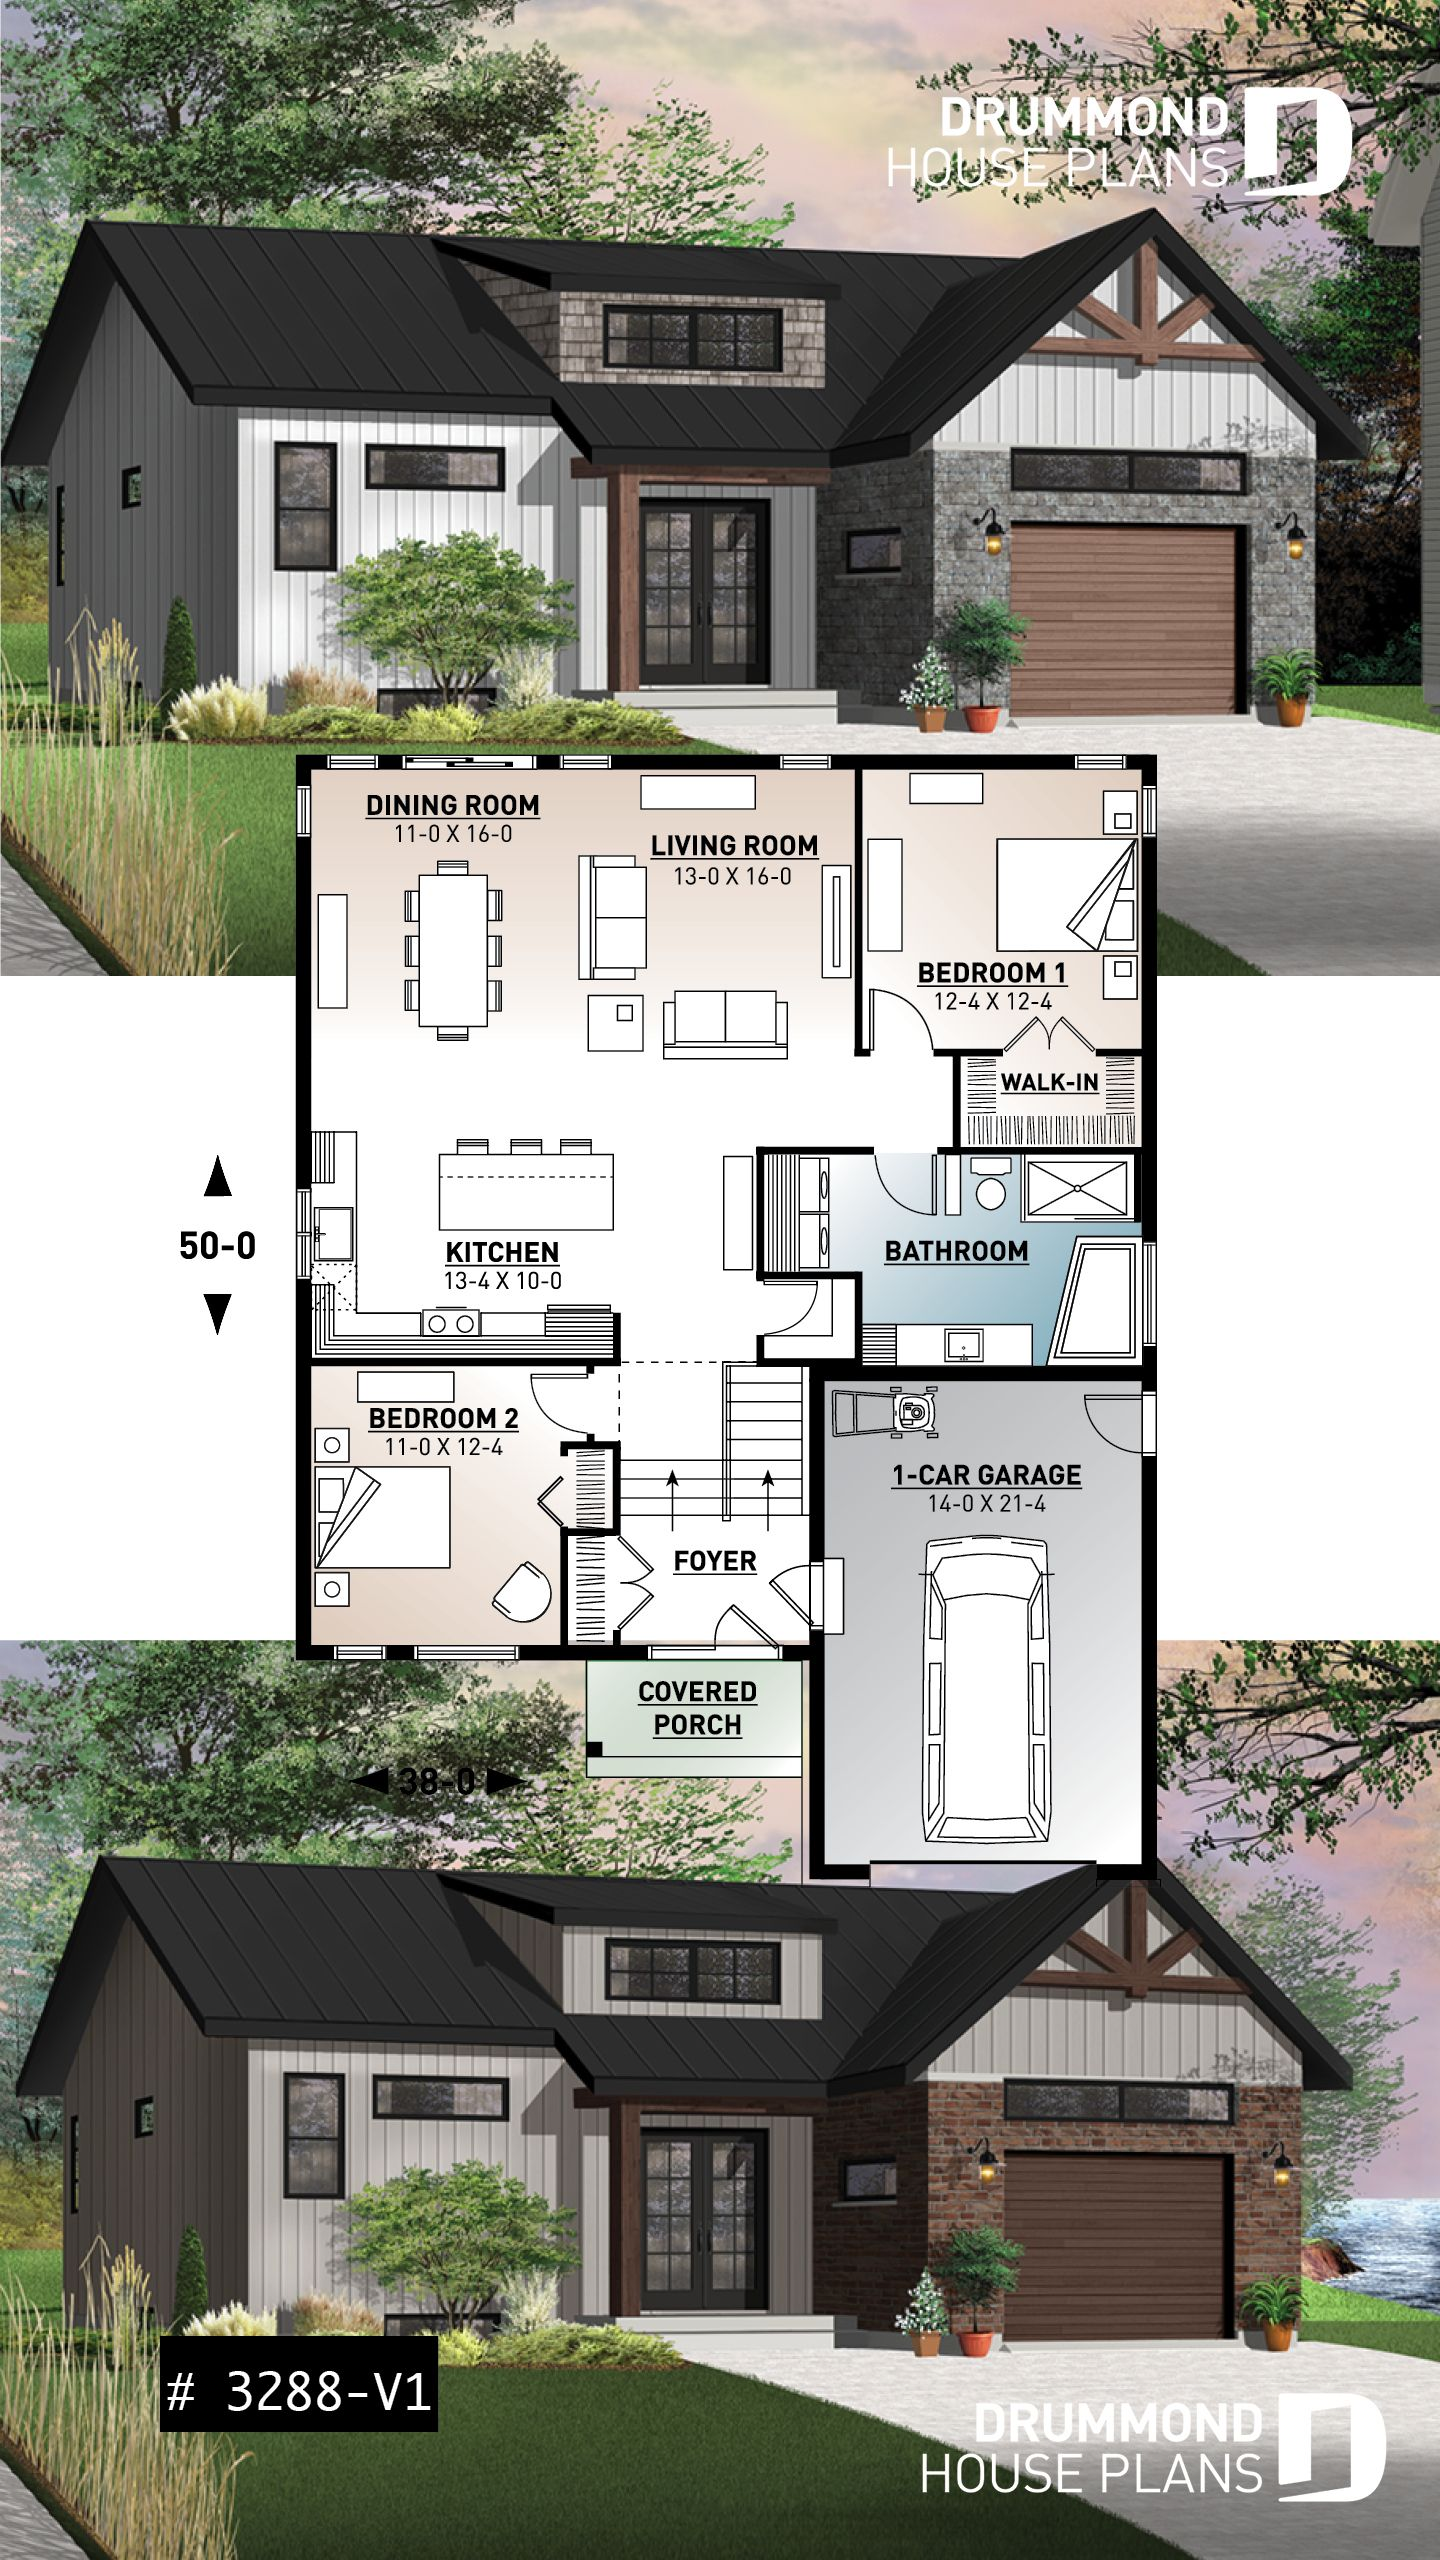 Discover The Plan 3288 V1 Urban Valley 2 Which Will Please You For Its 2 Bedrooms And For Its Farmhouse Styles Bungalow House Plans Sims House Plans House Plans